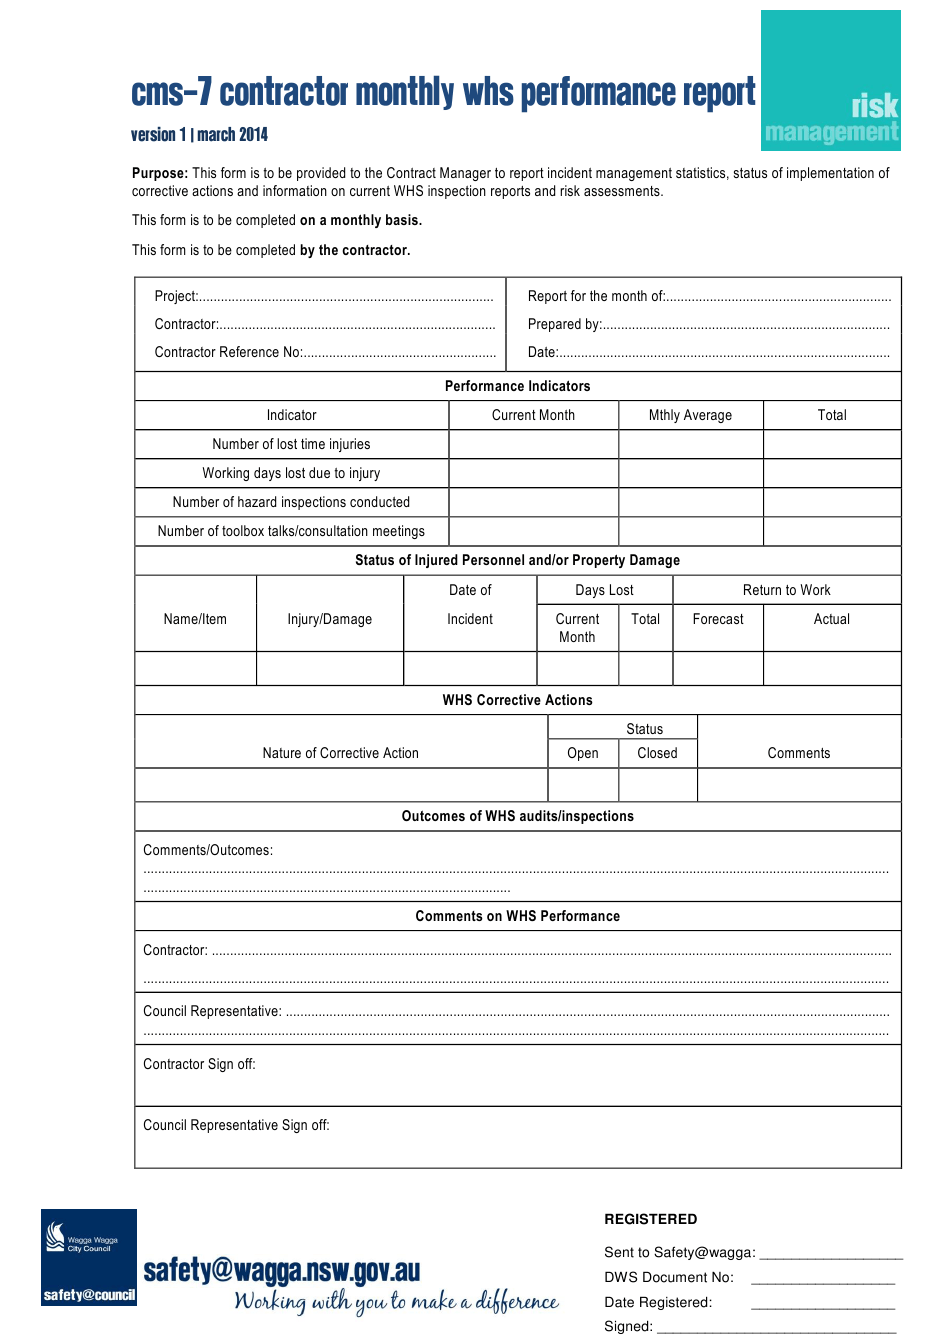 Australia Cms-21 Contractor Monthly WHS Performance Report Template Intended For Ohs Monthly Report Template